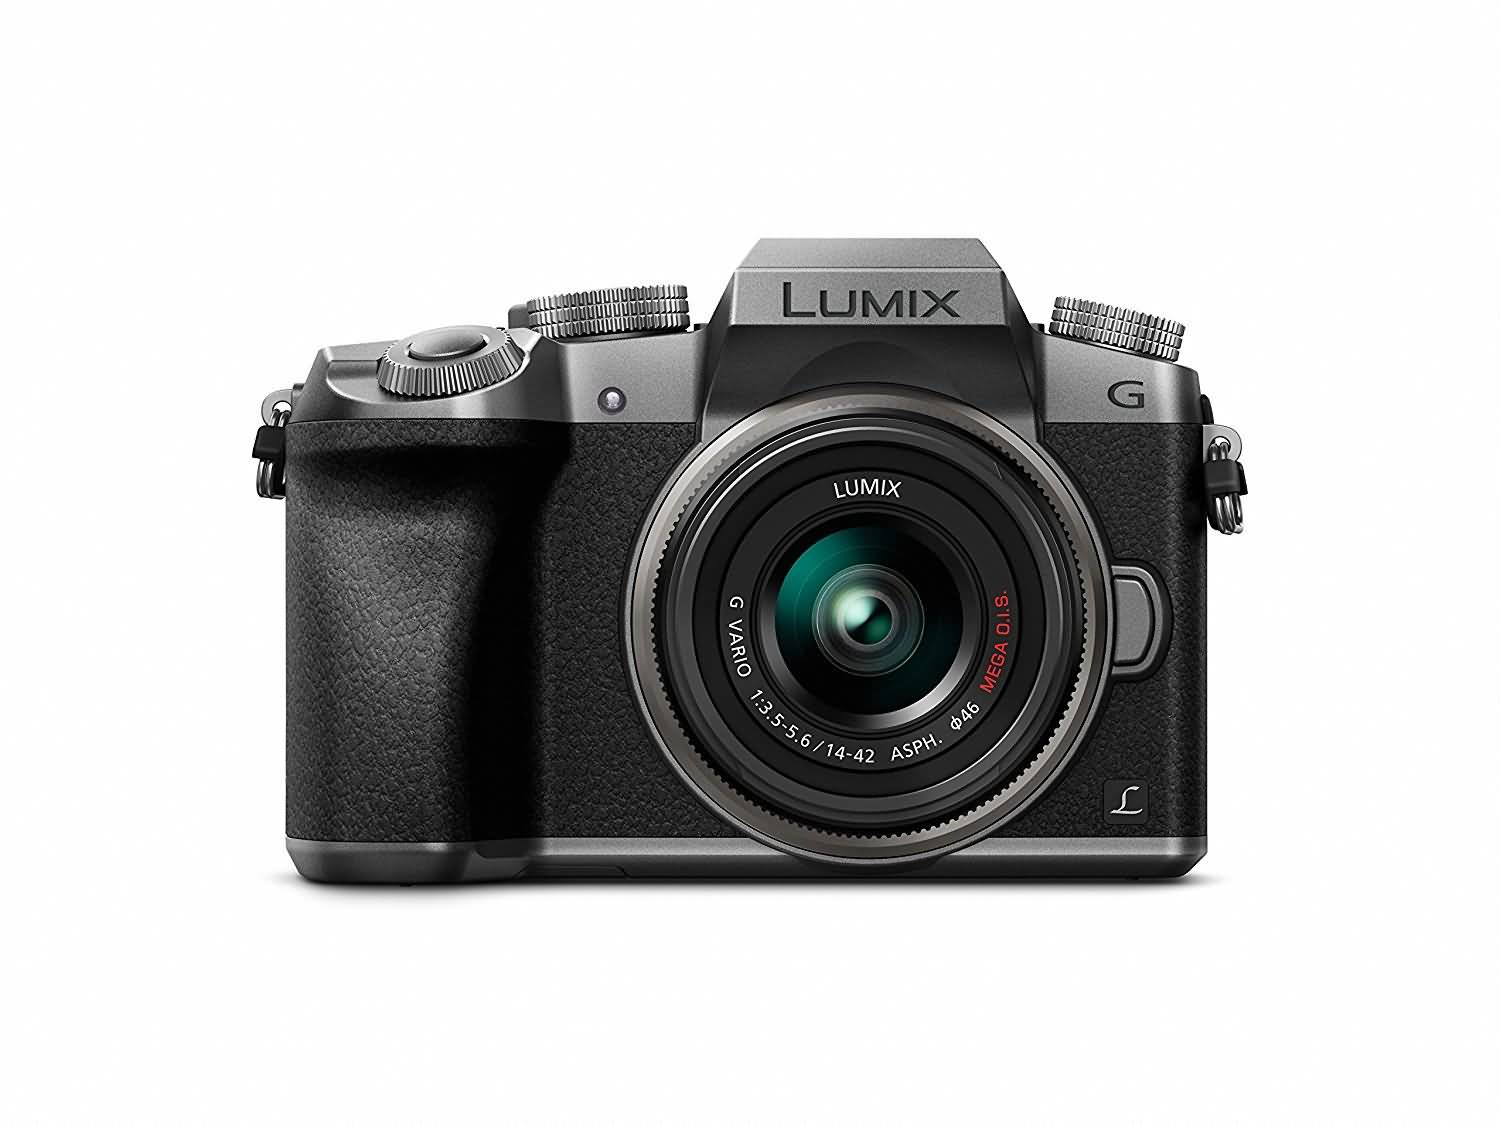 panasonic-lumix-g7-mirrorless